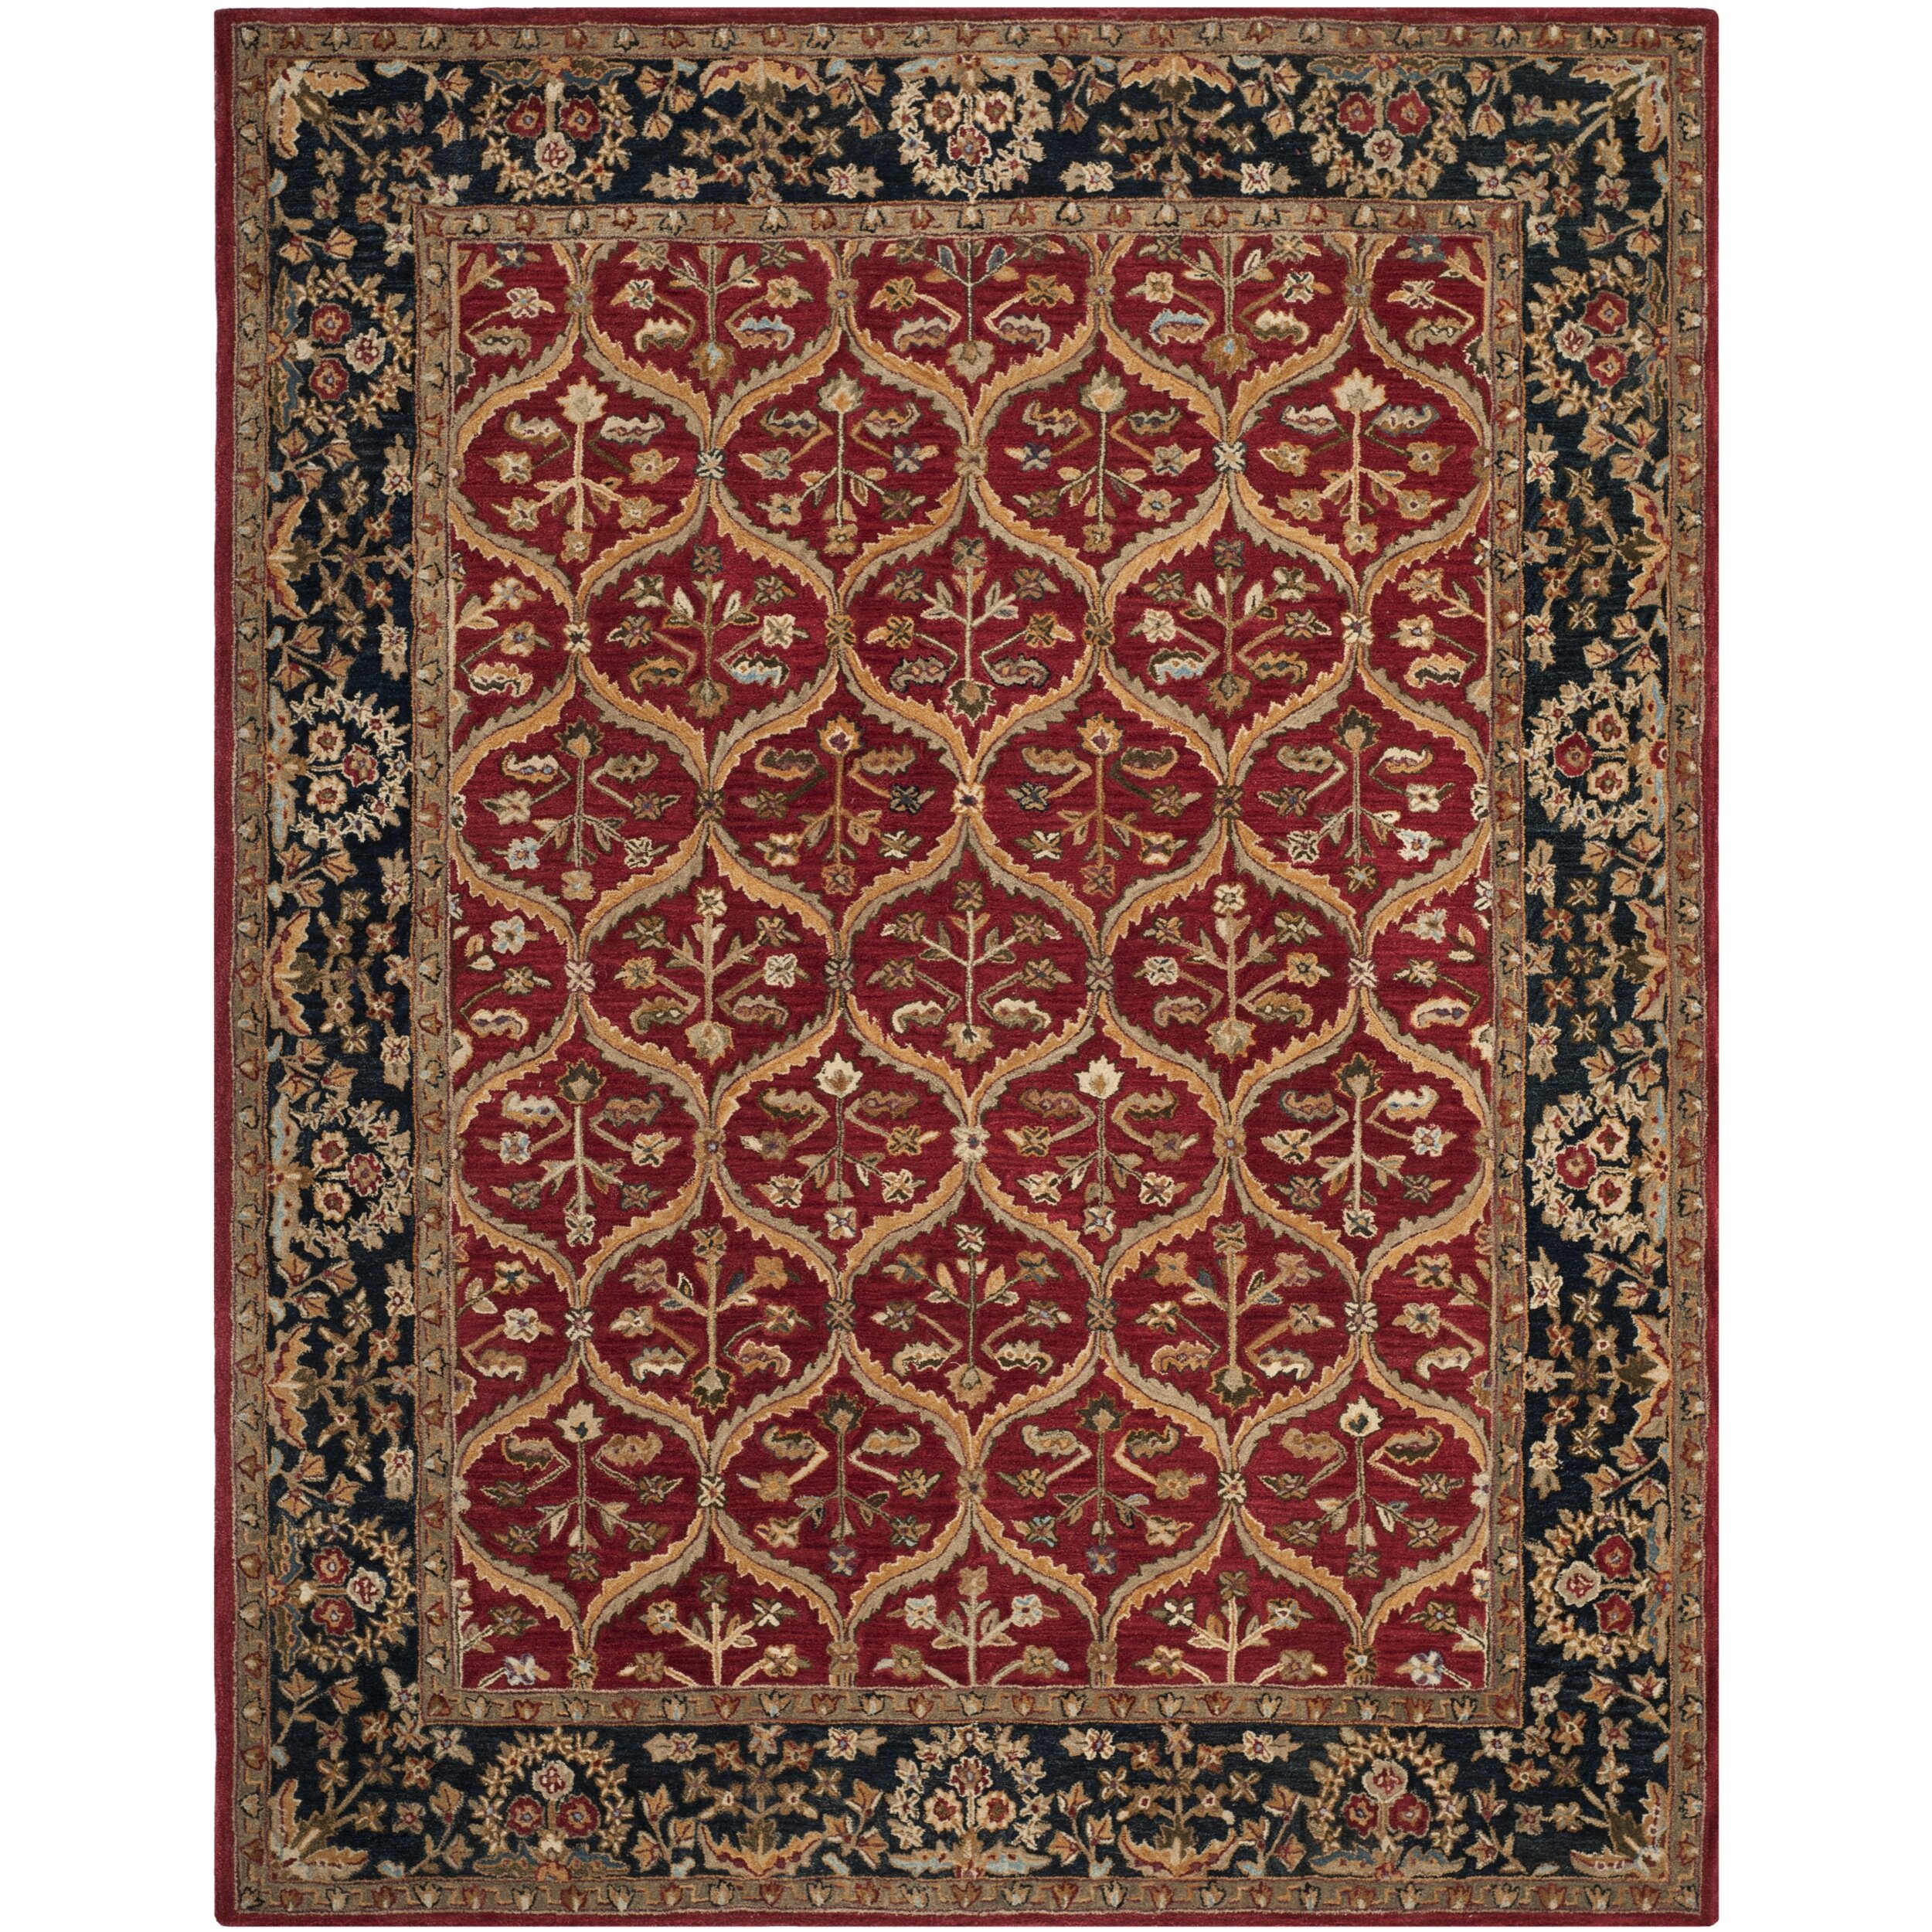 Charlton Home Tingley Hand Tufted Wool Red Navy Beige Area Rug Reviews Wayfair